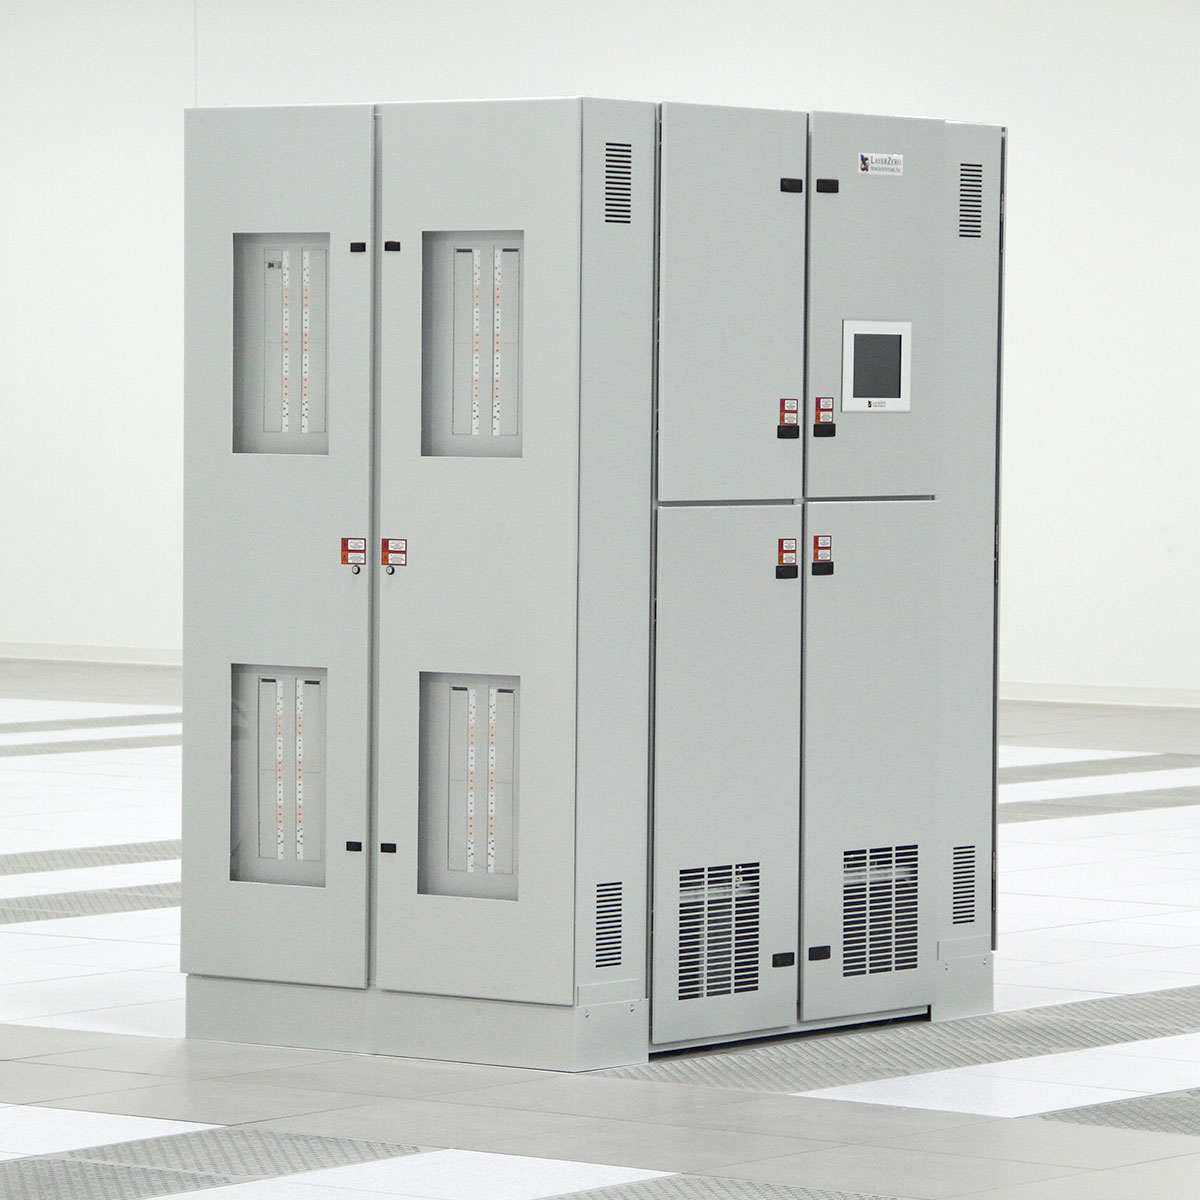 The LayerZero Series 70 ePODs: Type-X Power Distribution Unit (PDU) on data center floor.